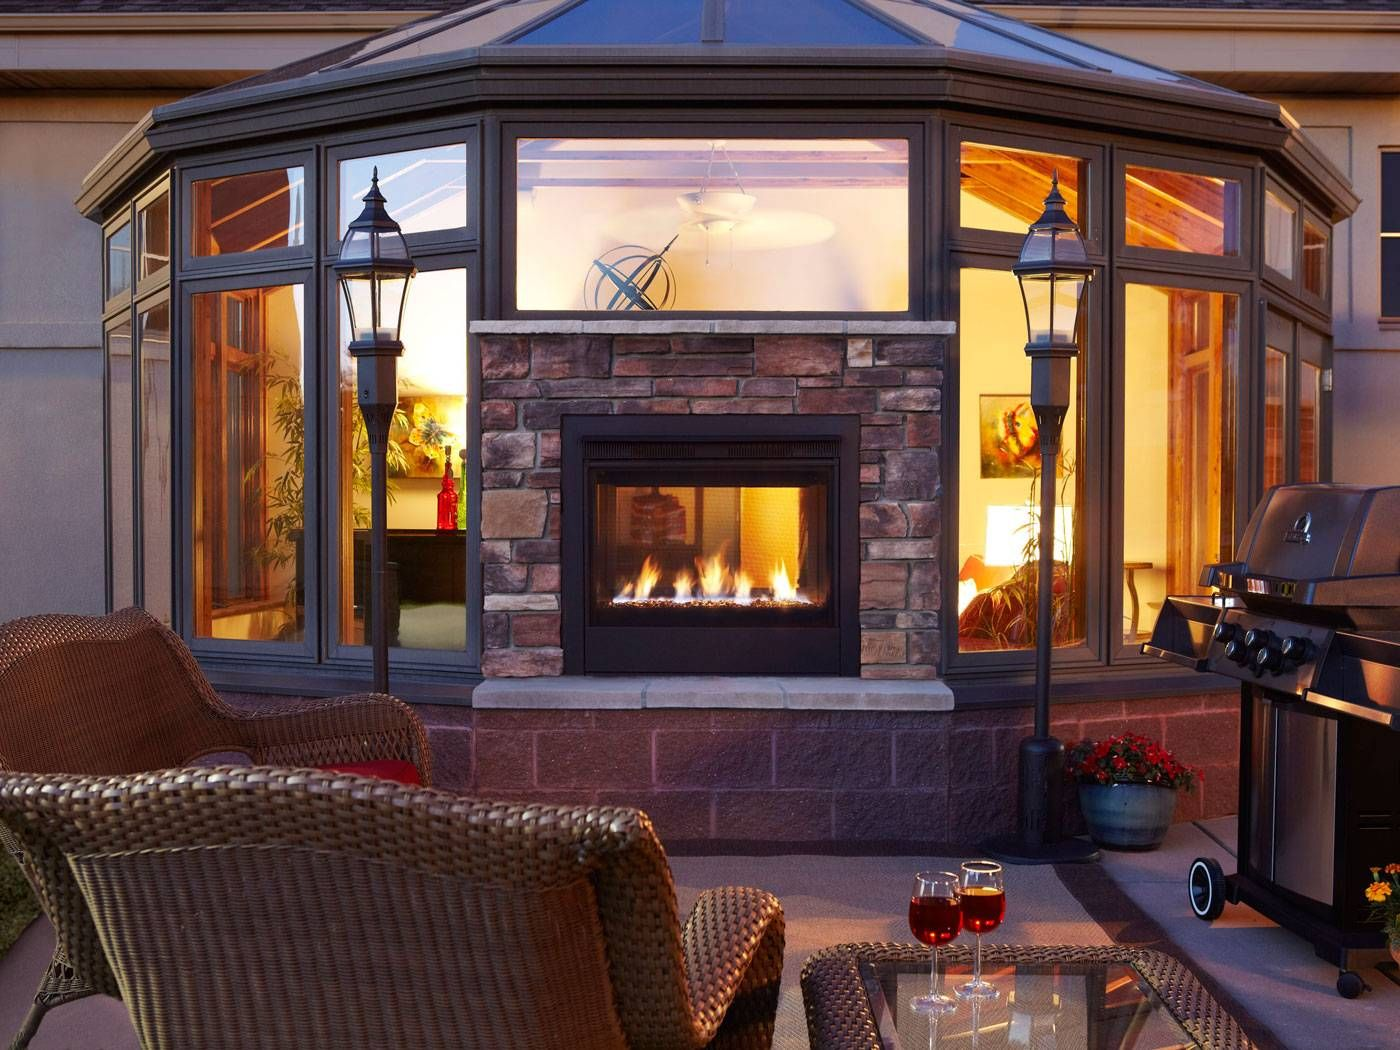 more ideas below diy bay windows exterior ideas nook bay windows rh pinterest com indoor outdoor linear gas fireplace indoor outdoor natural gas fireplace